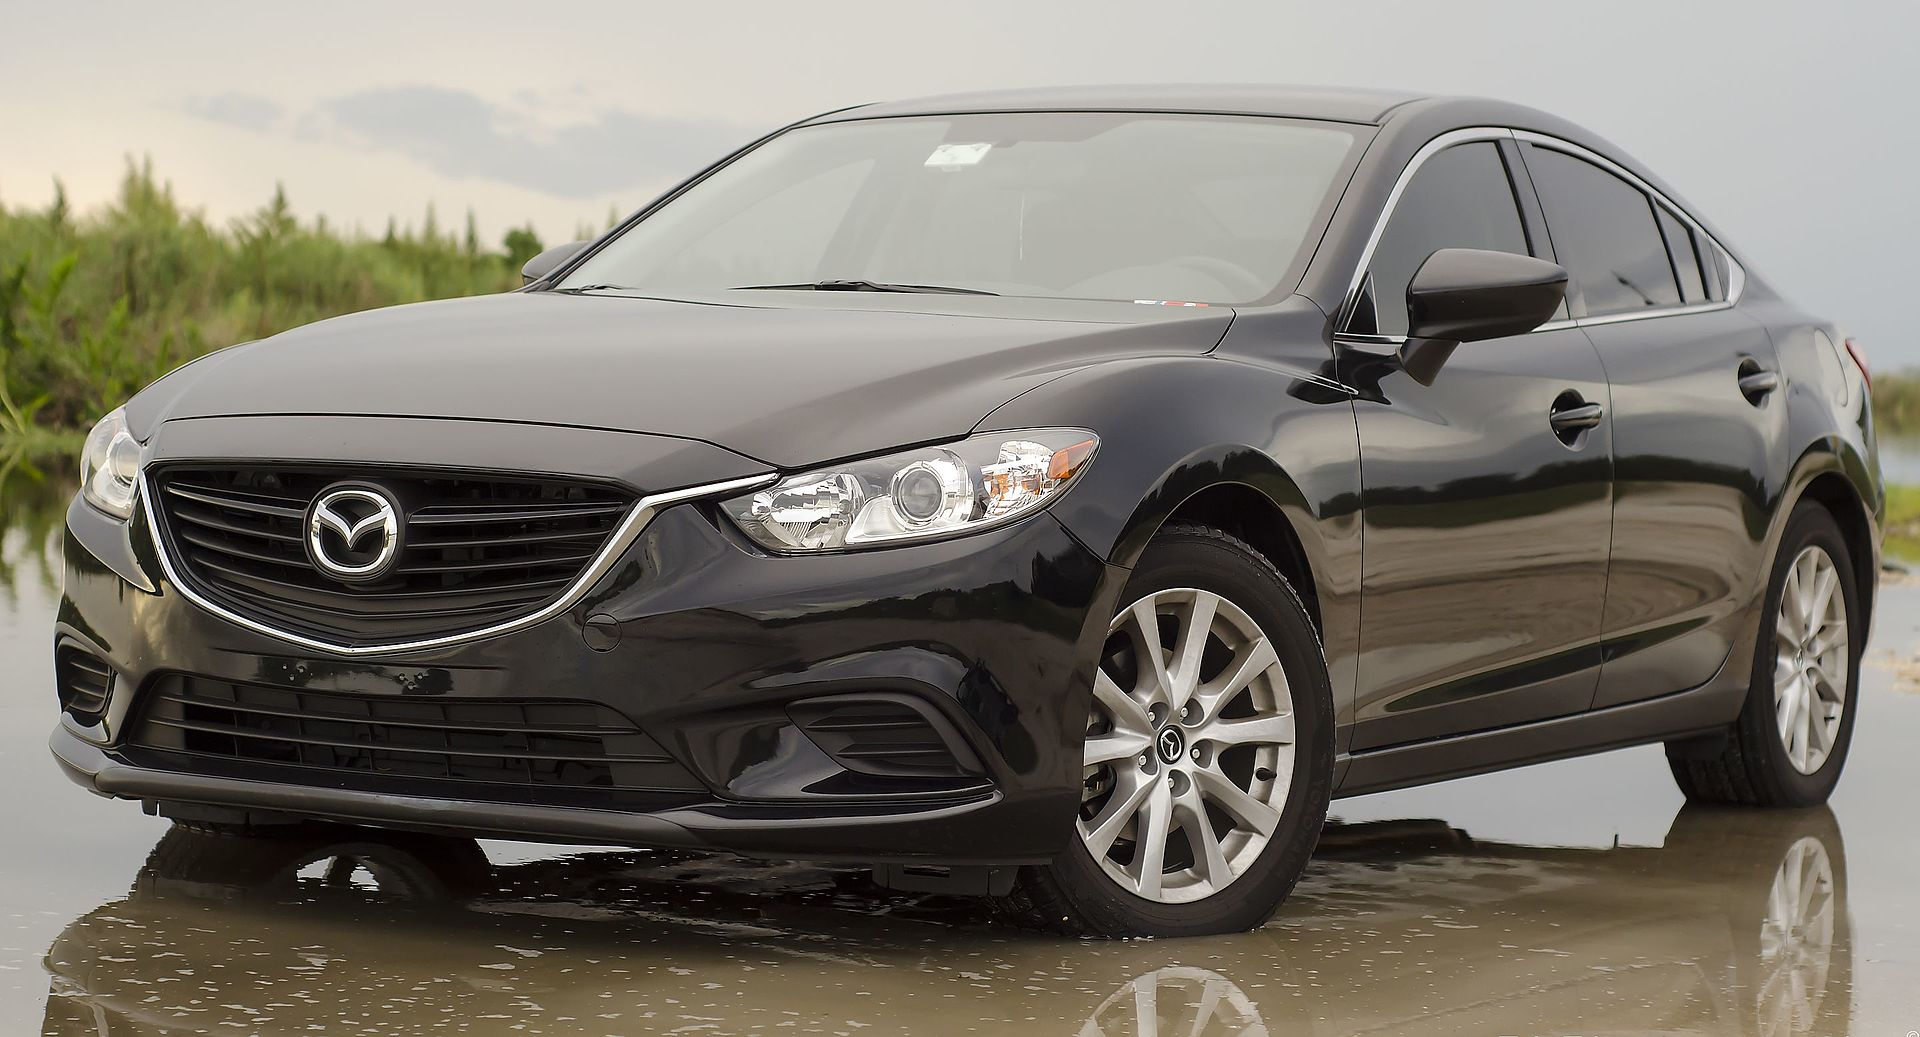 2014 Mazda6 Shoot (8931344459) (cropped).jpg